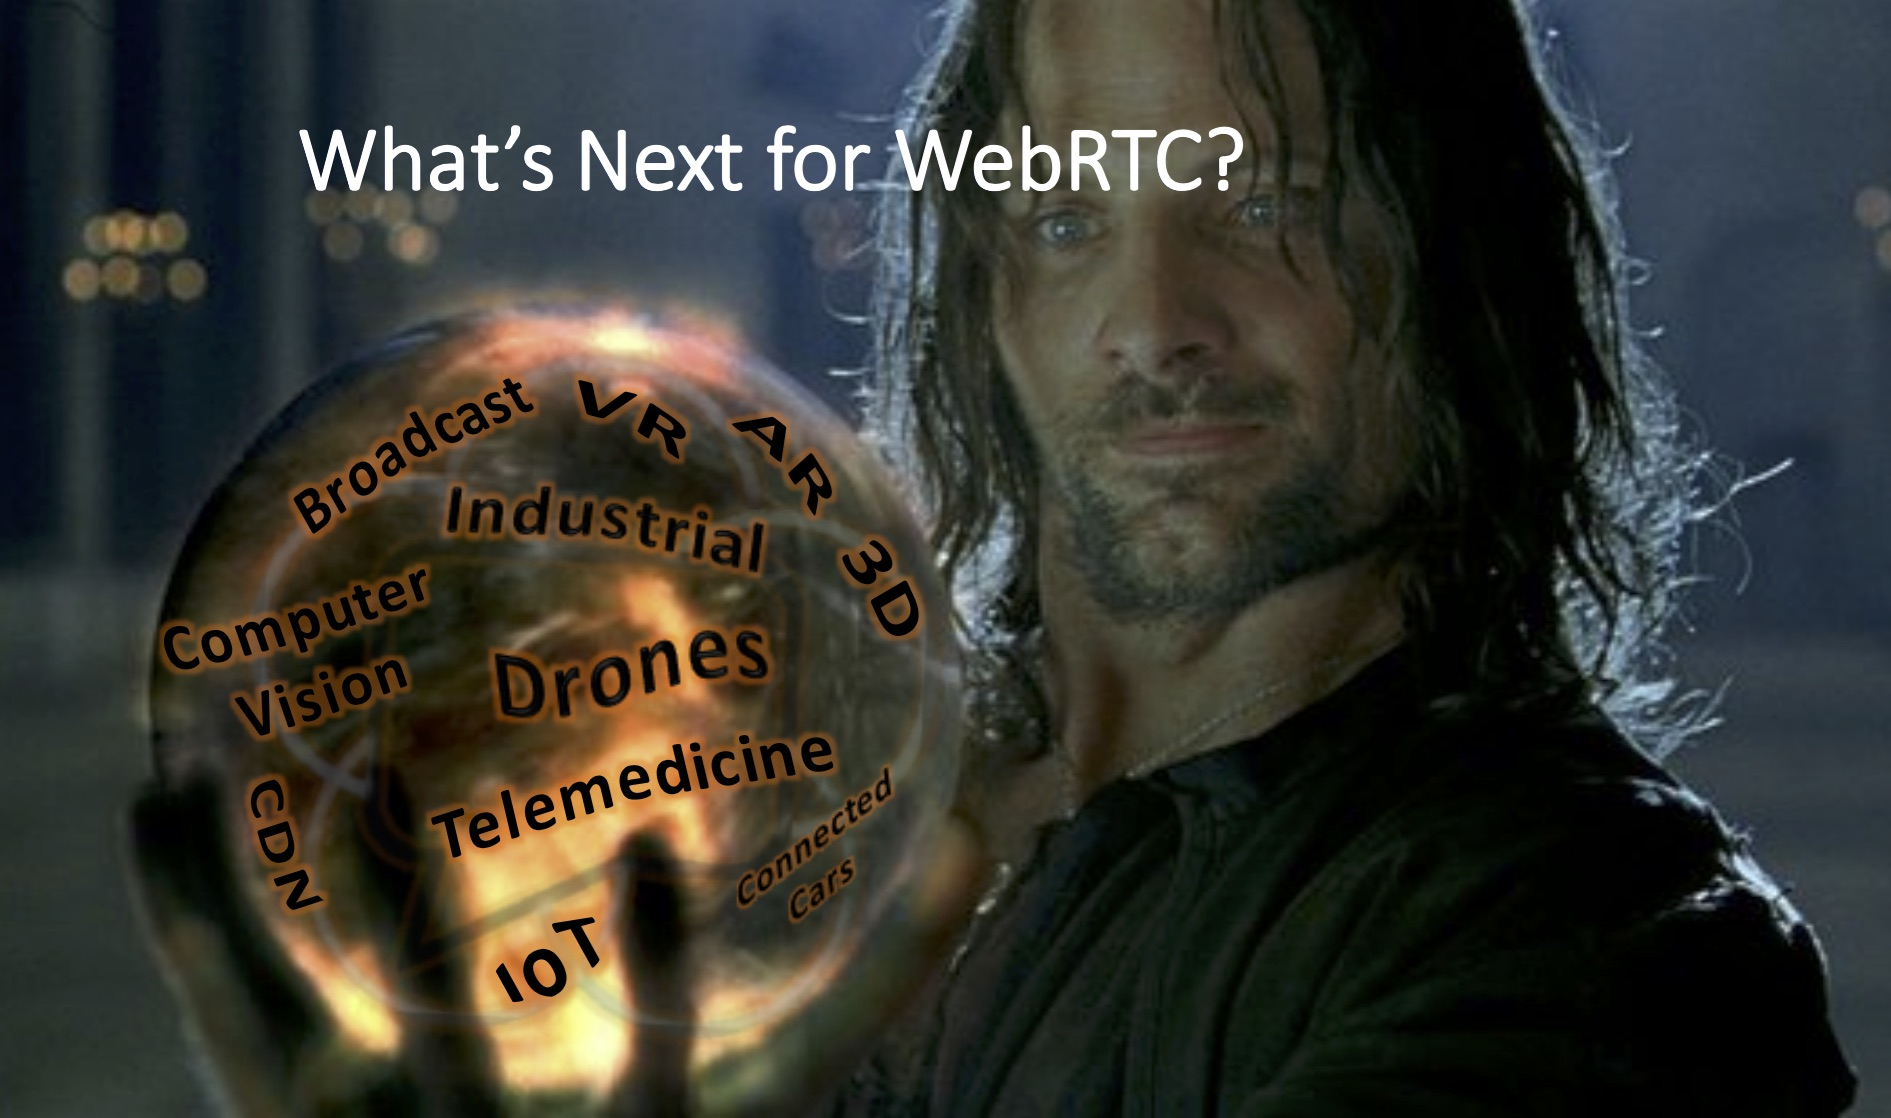 What's Next for WebRTC?